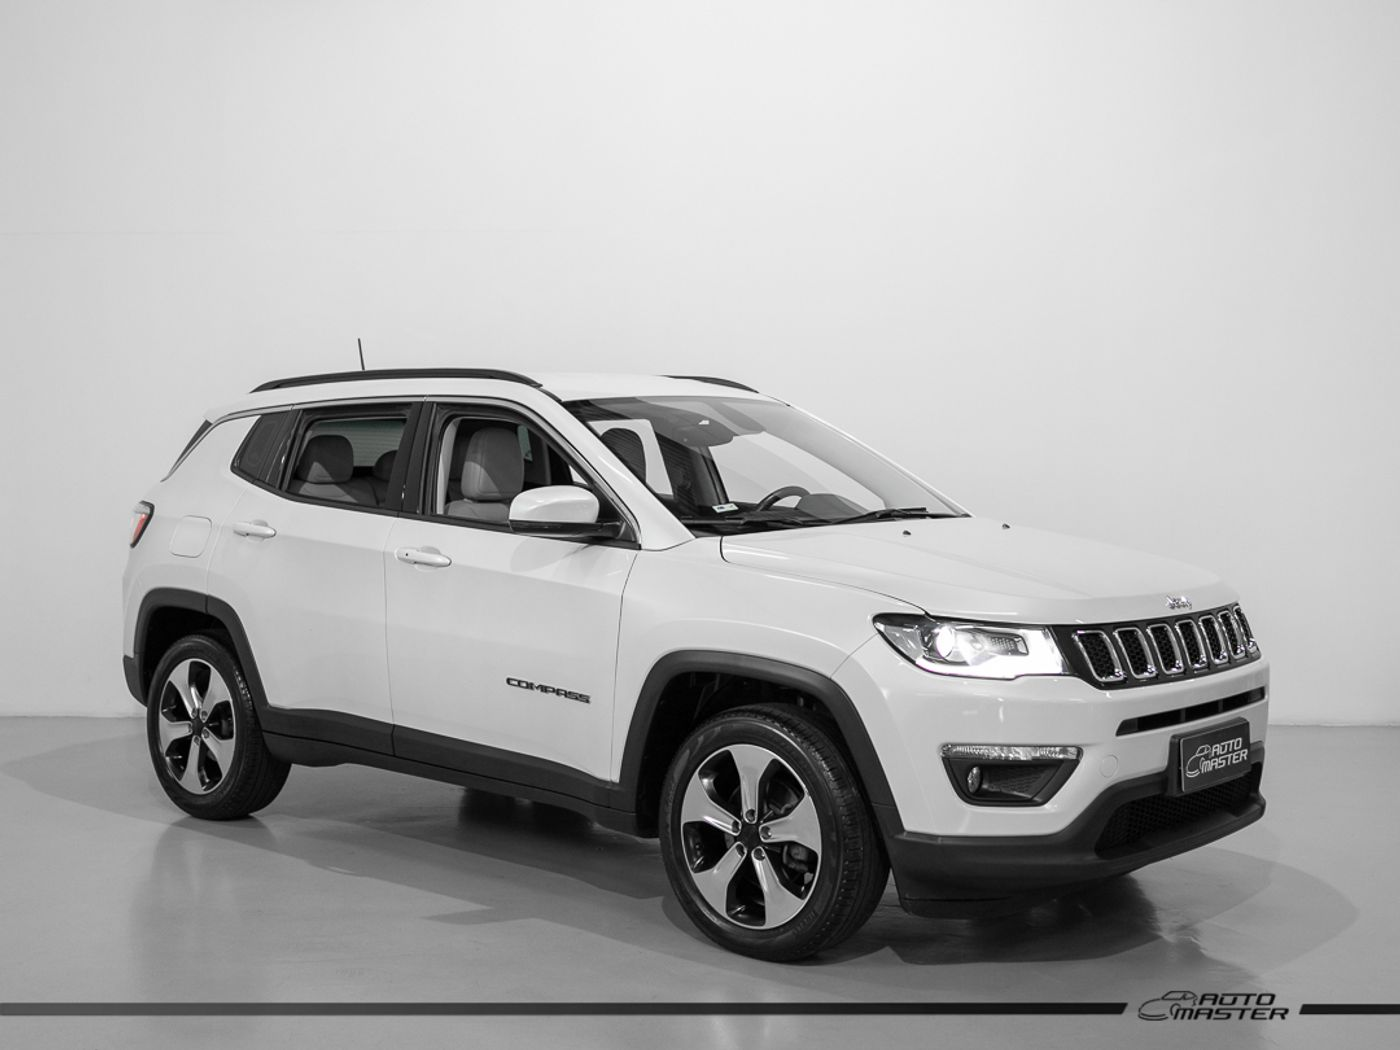 Jeep COMPASS LONGITUDE 2.0 4x2 Flex 16V Aut.